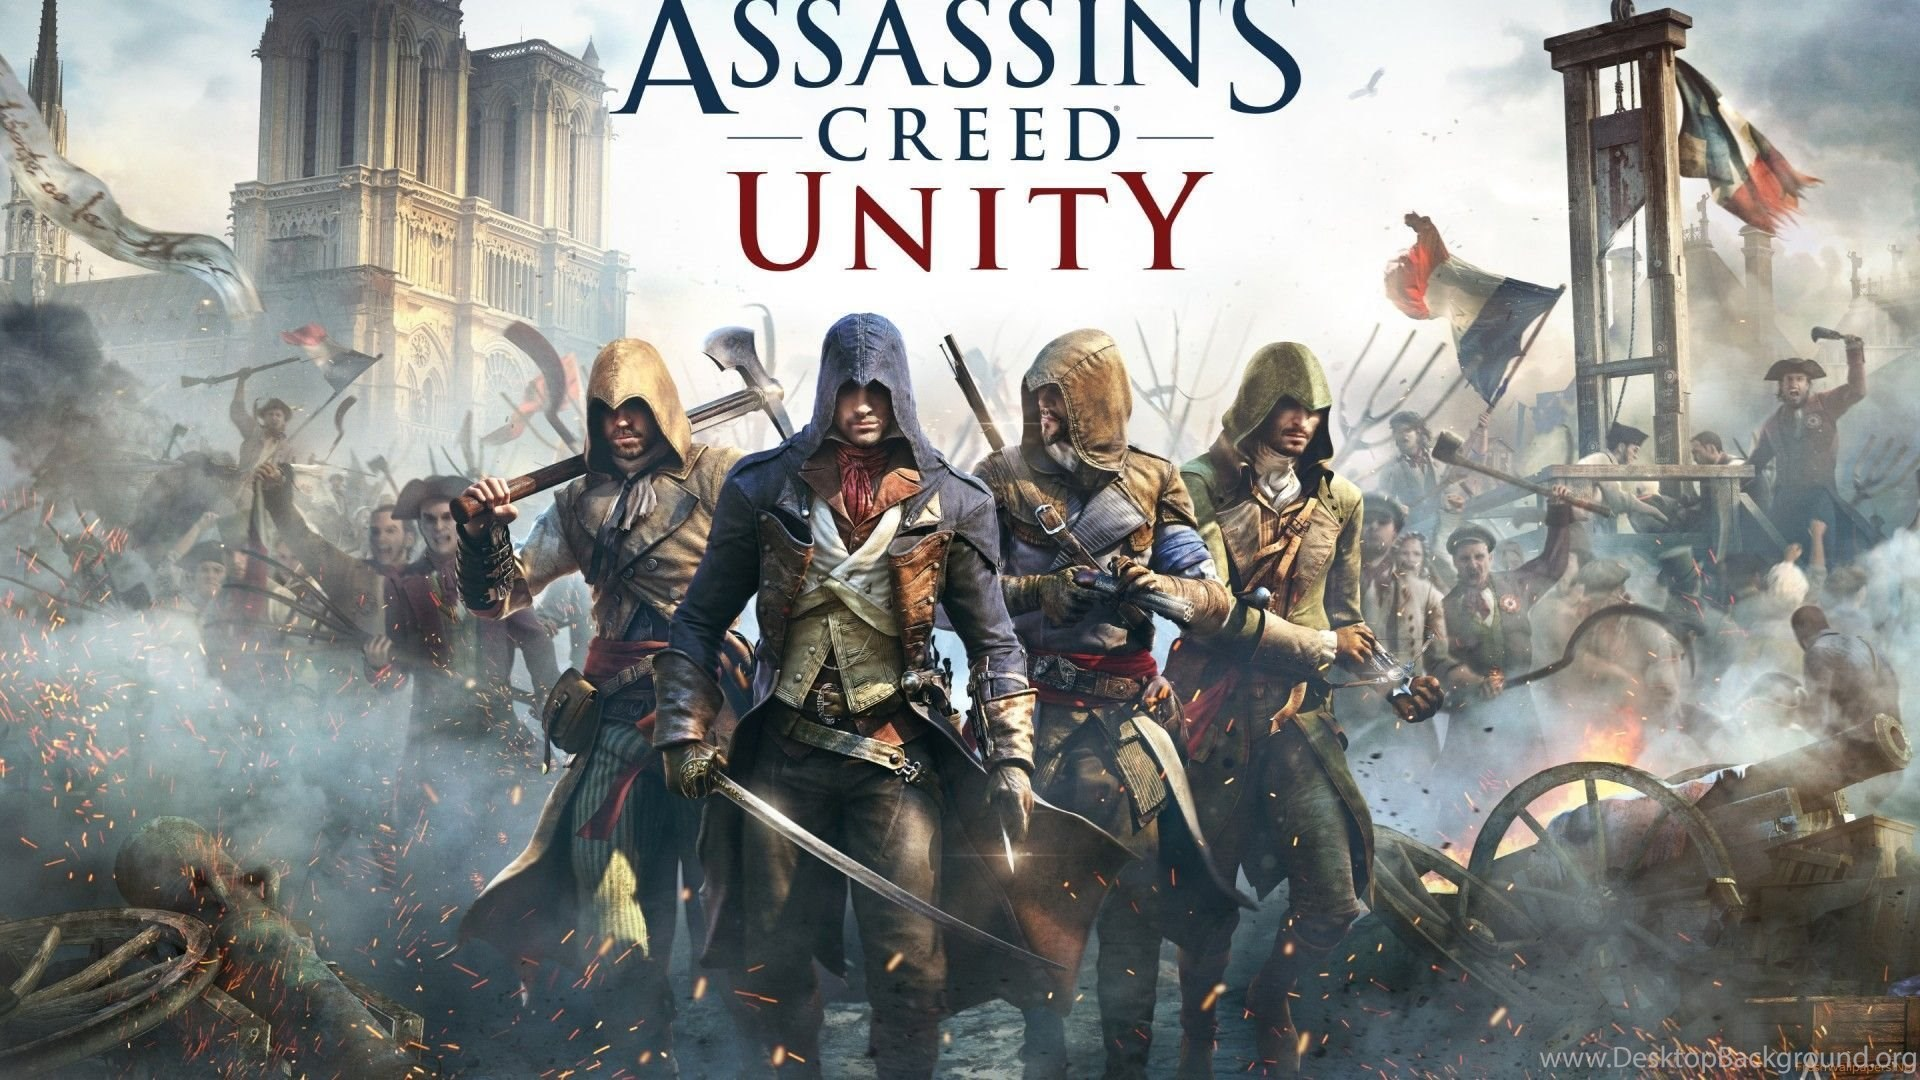 Assassin's Creed Unity Wallpapers Desktop Background